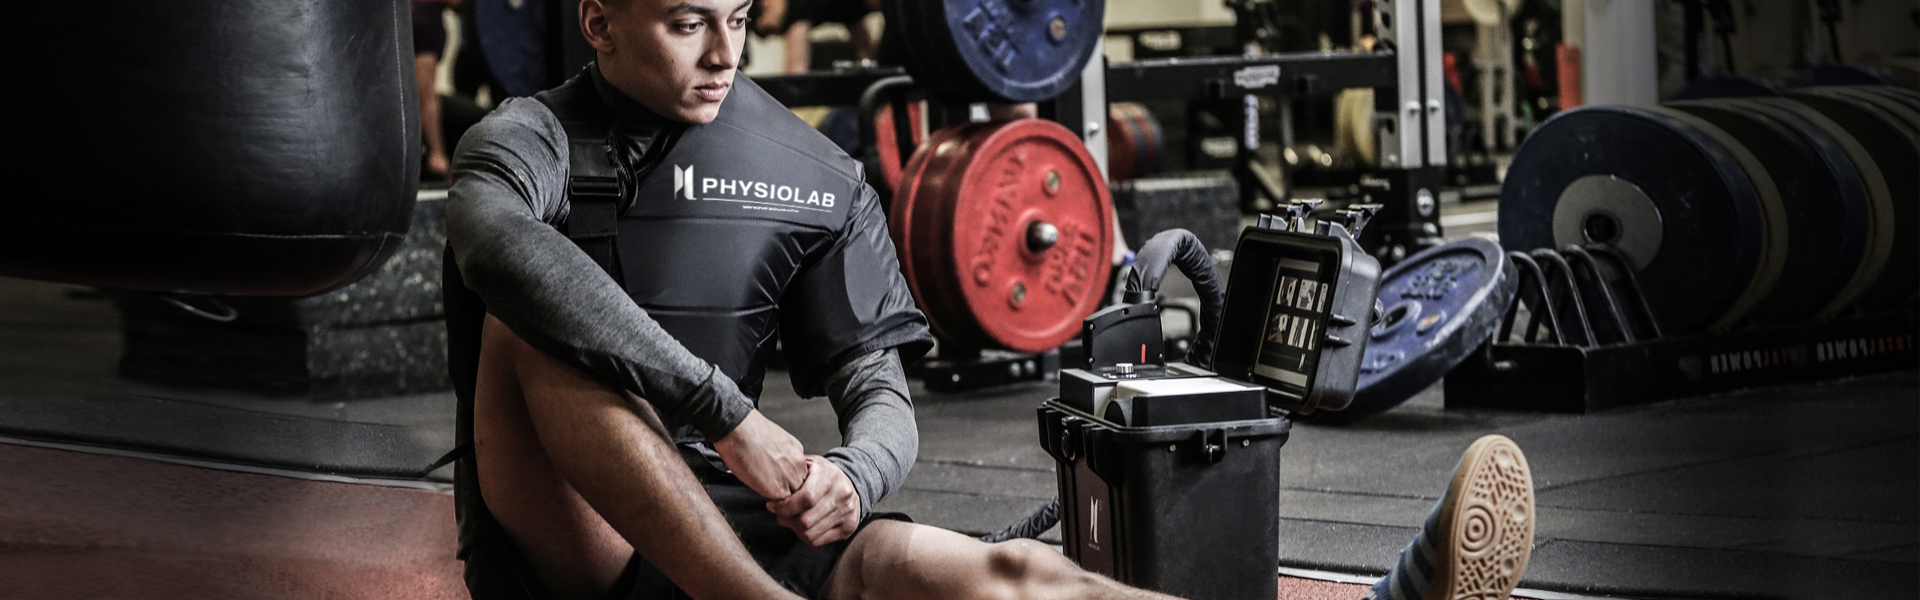 Physiolab shoulder elite athlete injury recovery